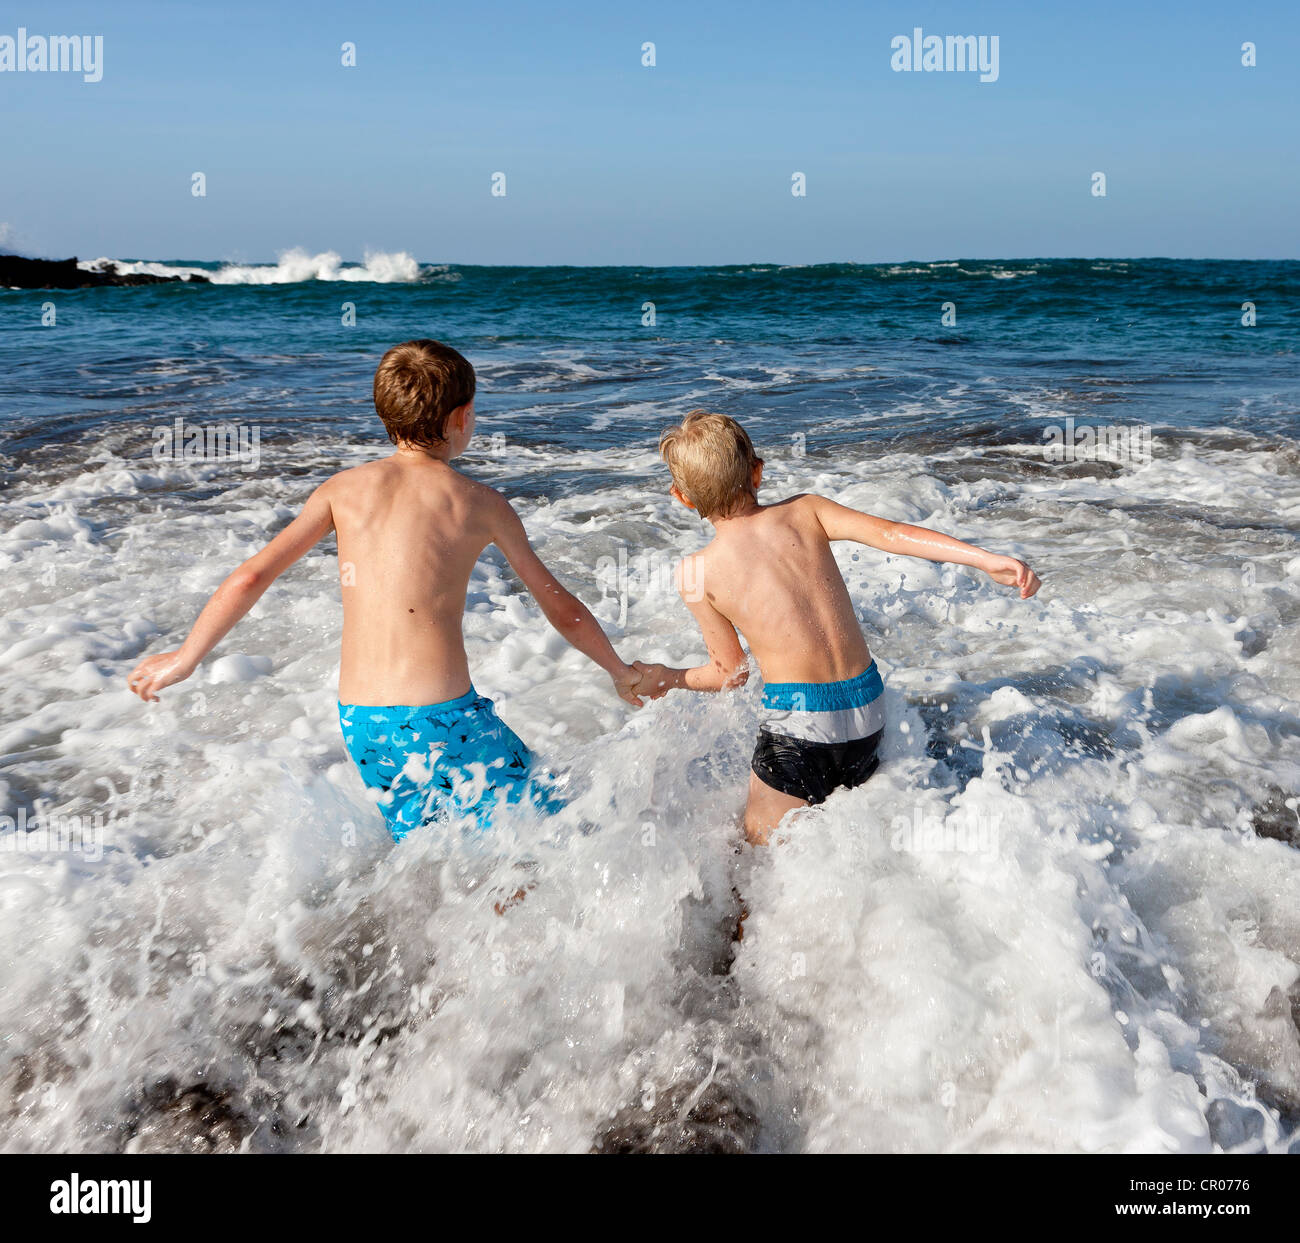 Children playing in the surf, Playa Jardin beach, Puerto de la Cruz, Tenerife, northern part, Canary Islands, Spain, - Stock Image